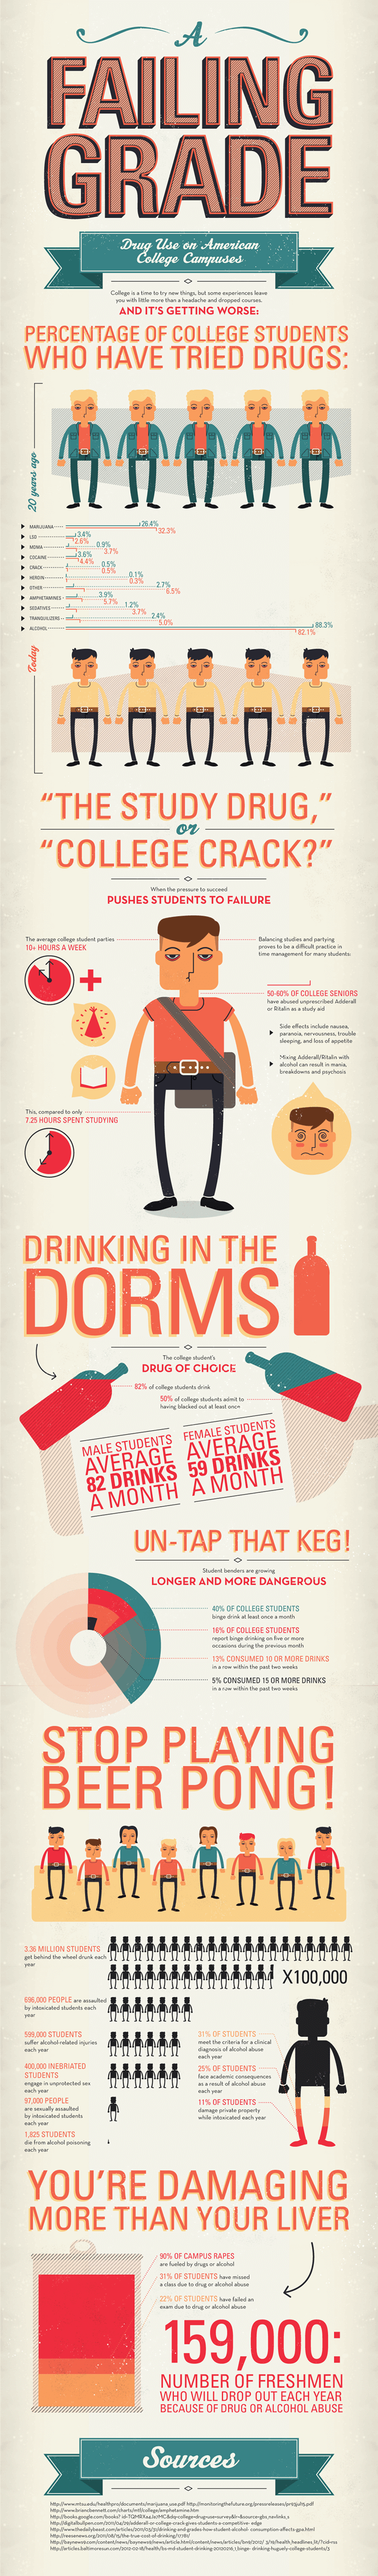 College Drug Use Infographic